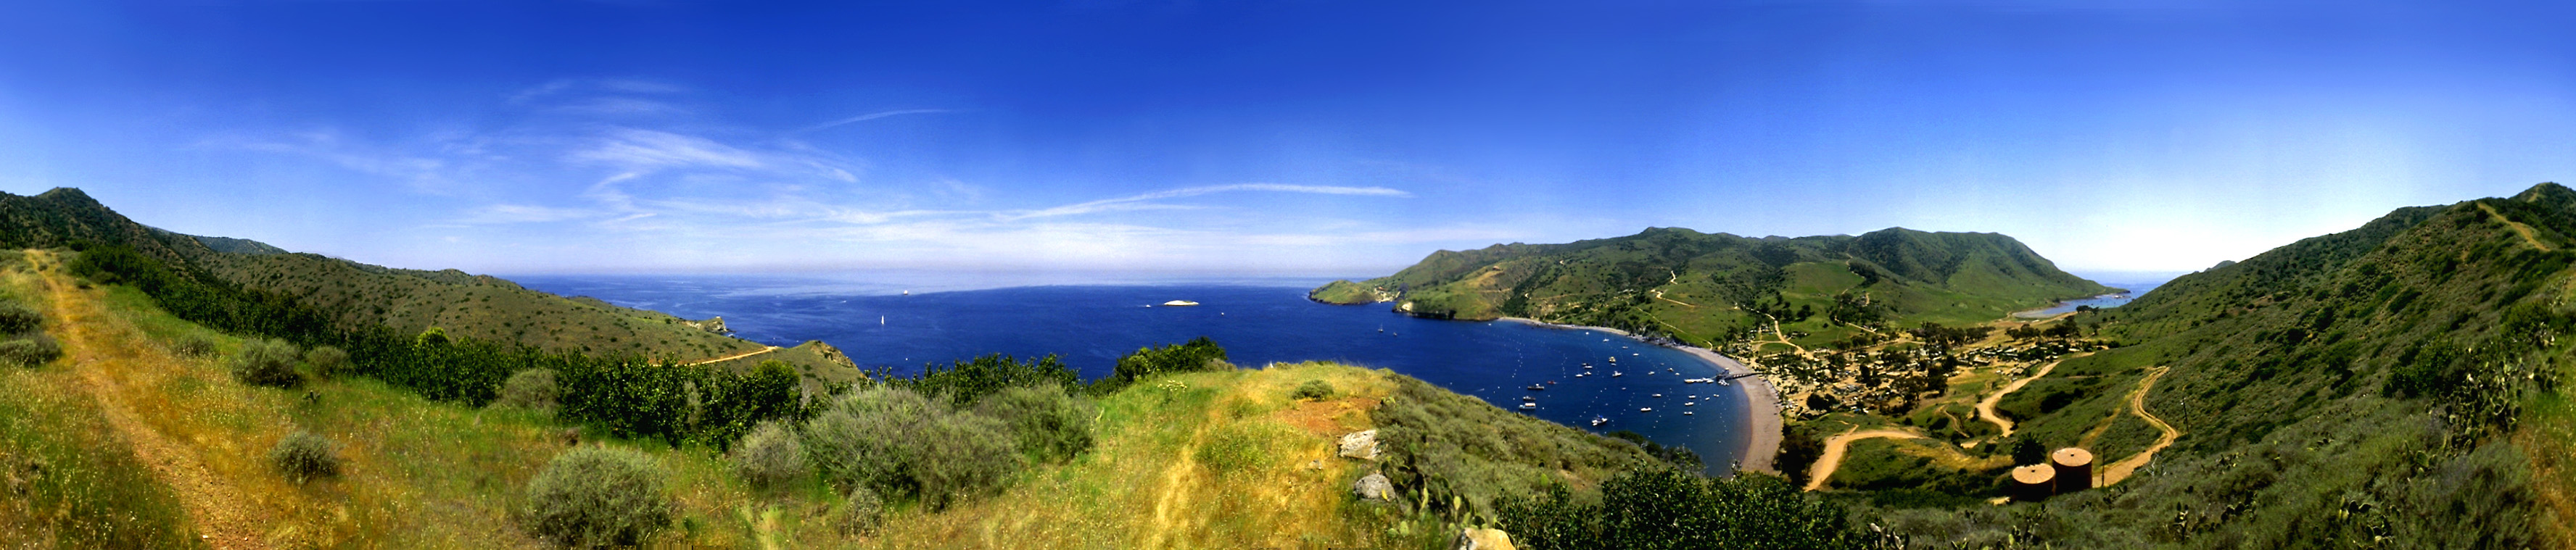 Two Harbors, Catalina Island. Janie Fitzgerald photography.